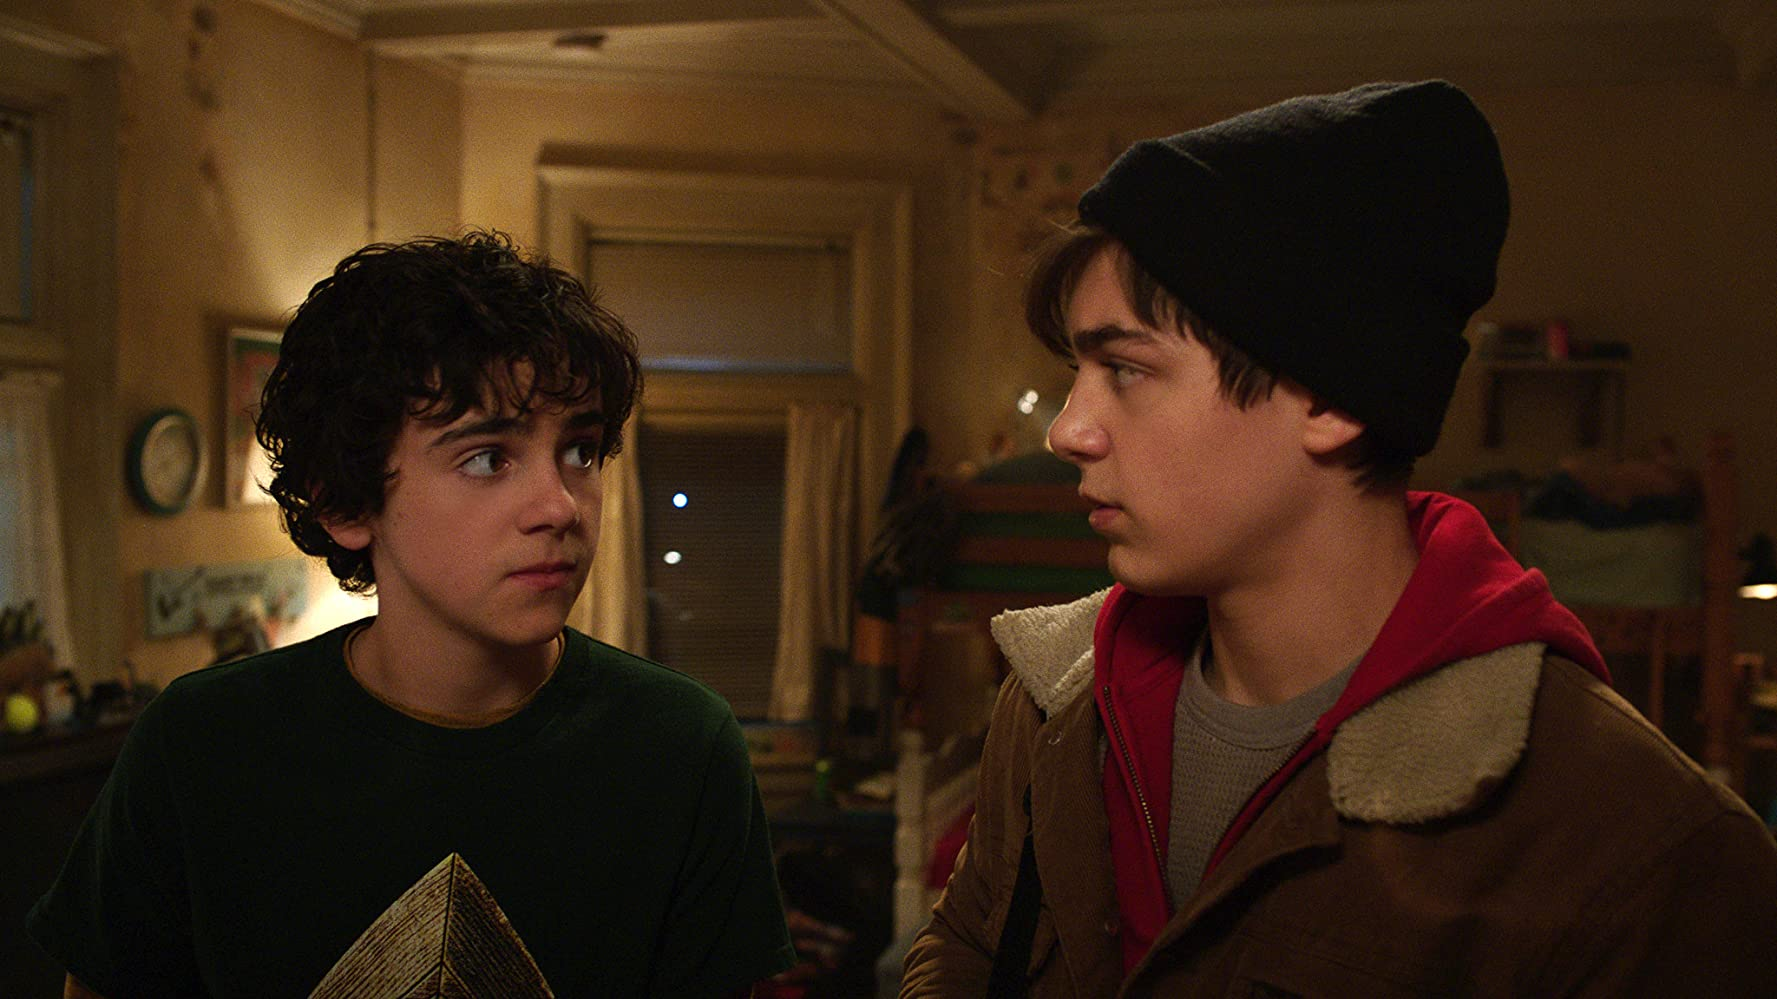 Asher Angel and Jack Dylan Grazer in Shazam! (2019)